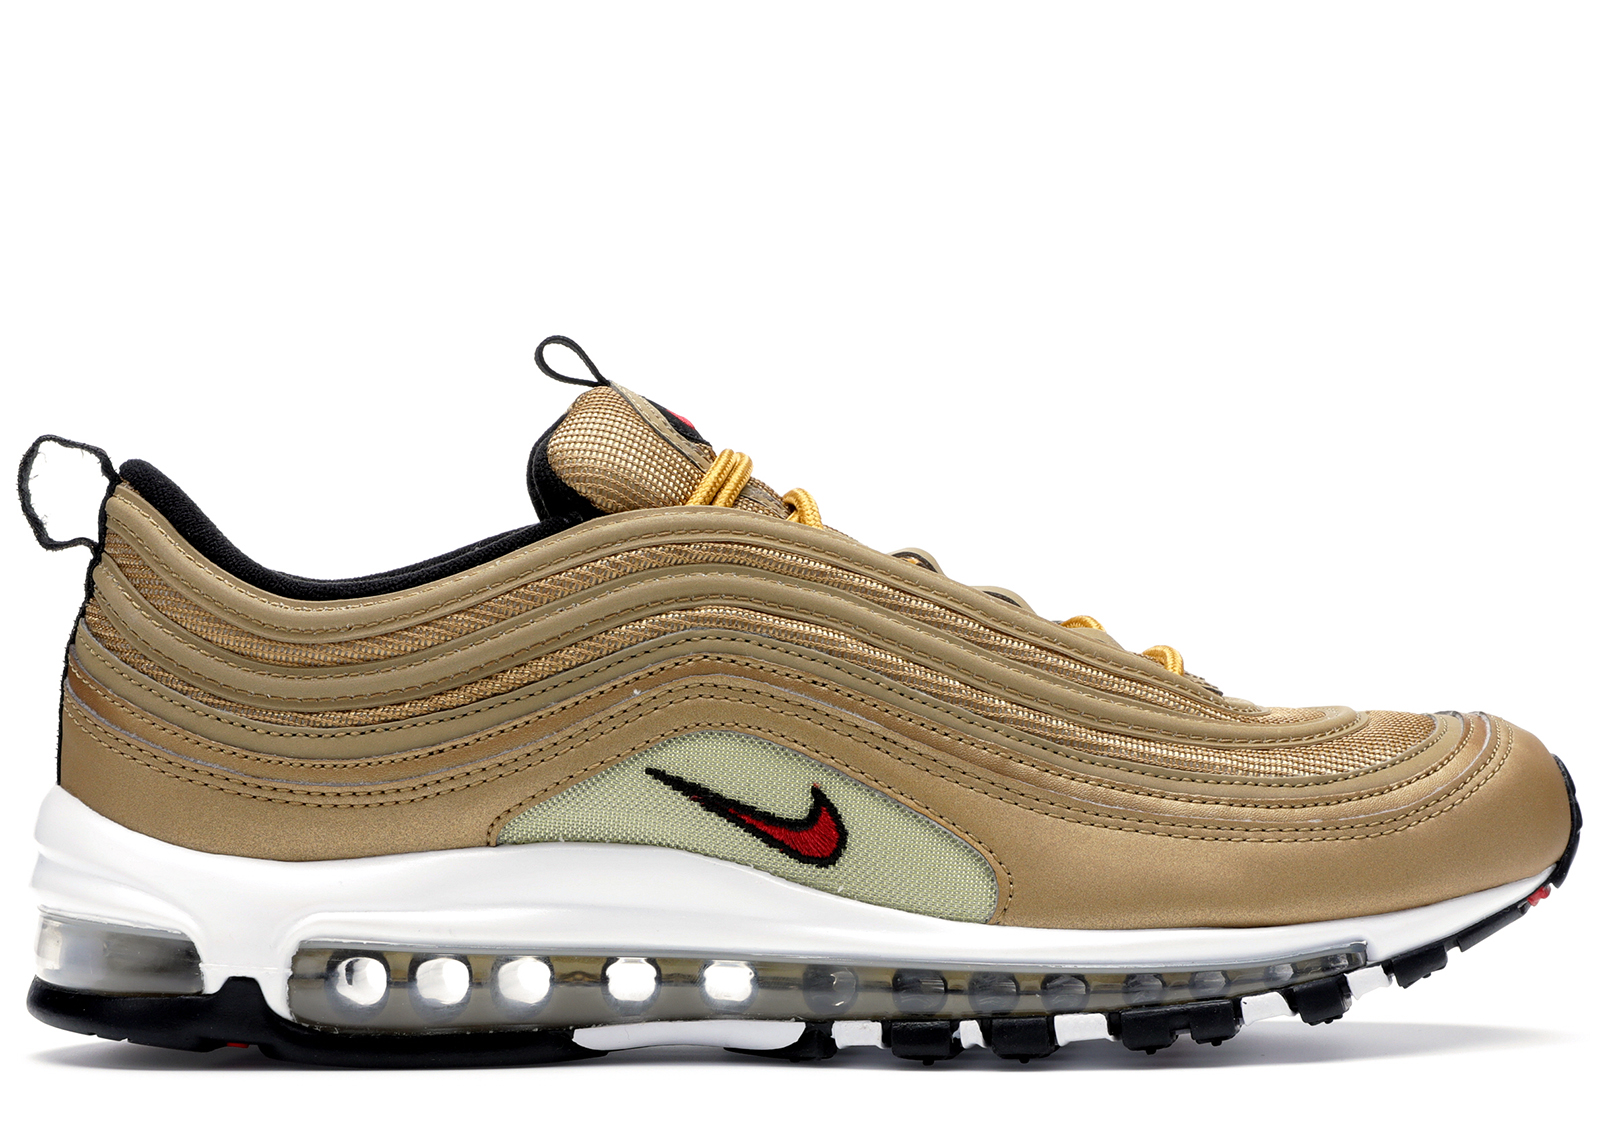 Nike Air Max 97 Metallic Gold 2017 Release Date | SneakerFiles